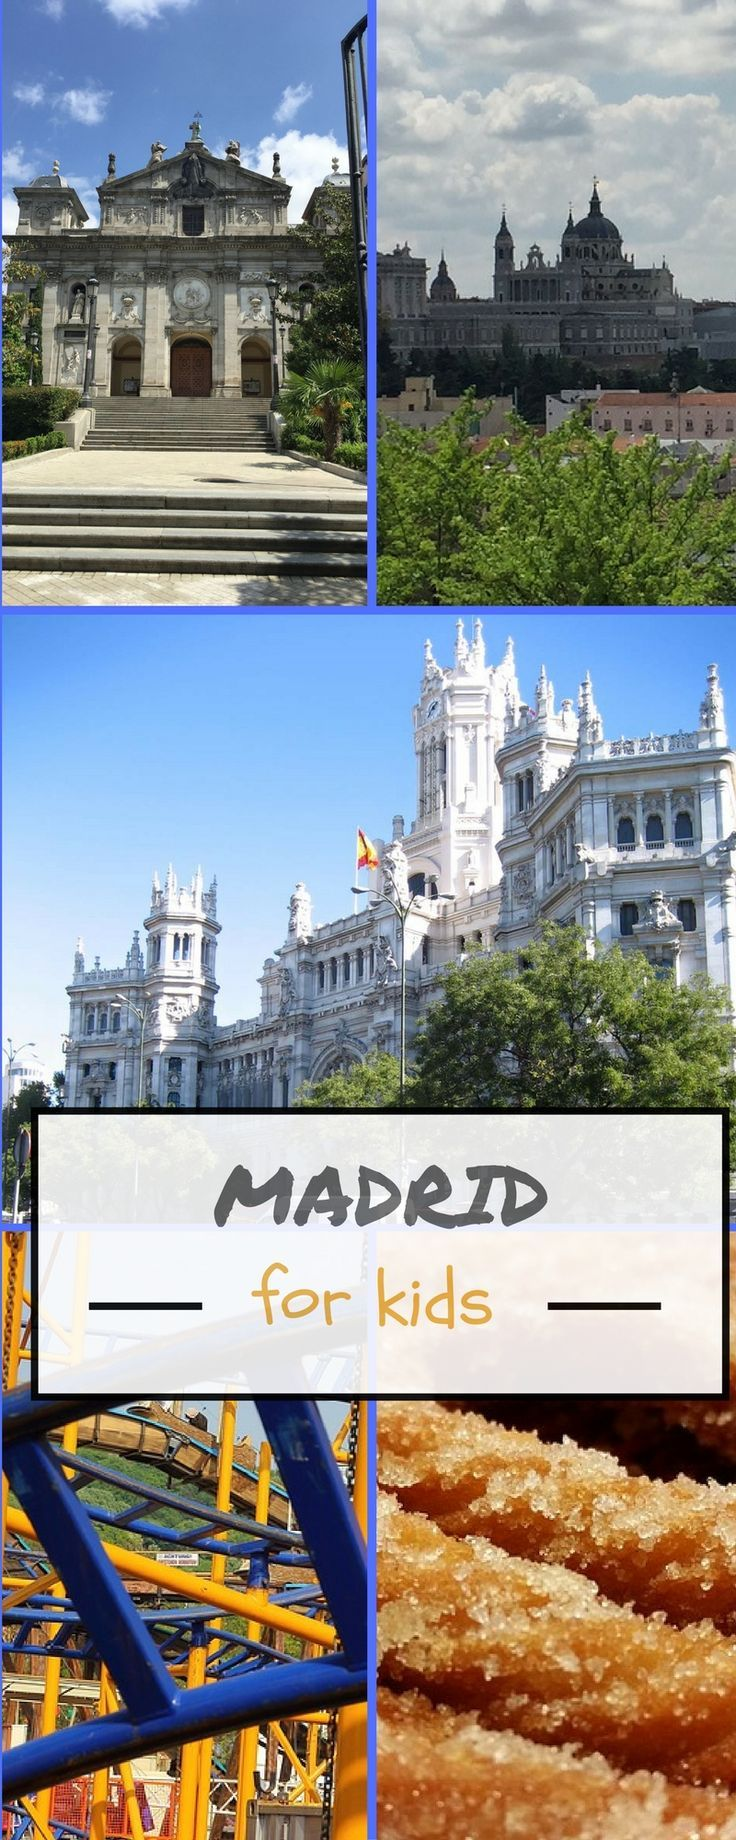 What are the top 5 things to do in Madrid with kids? The capital of Spain has plenty on offer for families: from sightseeing to museum visits and theme parks, find out the best family friendly attractions in Madrid and how to make the most of a family cit